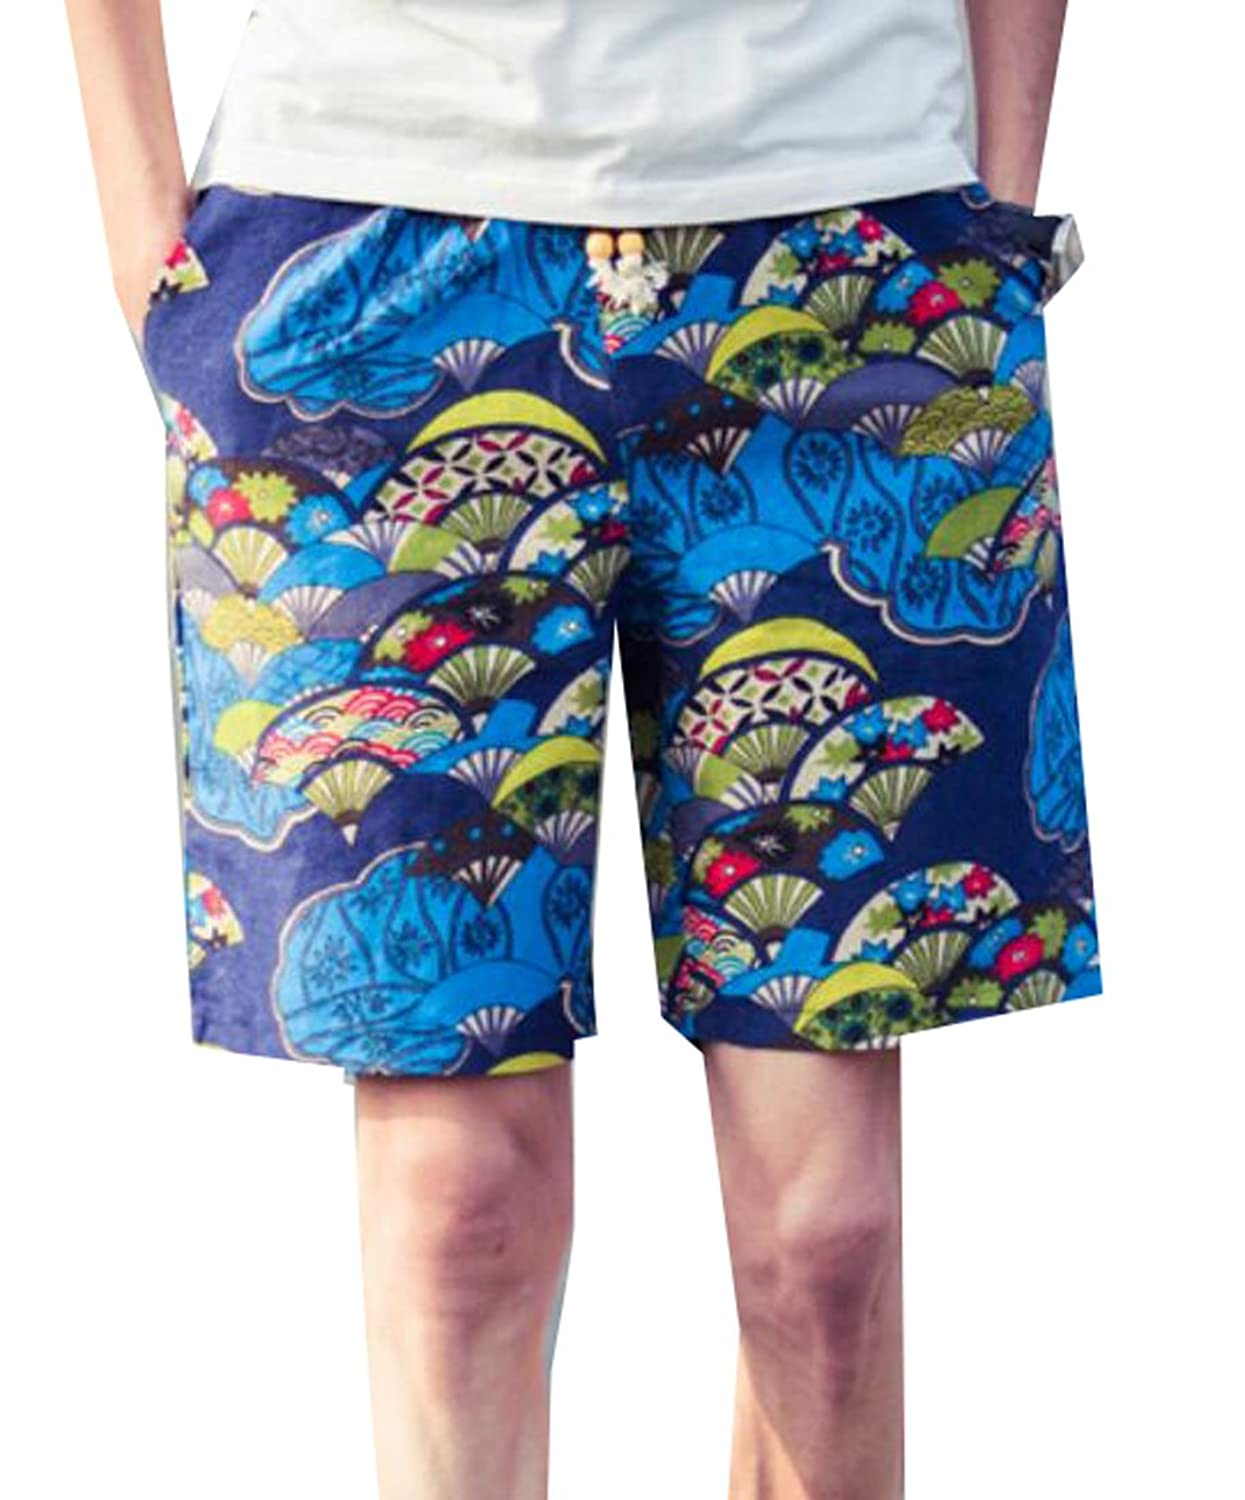 117e484172 80%OFF MLG Mens Athletic Printing Swimming Surfing Beach Board Shorts